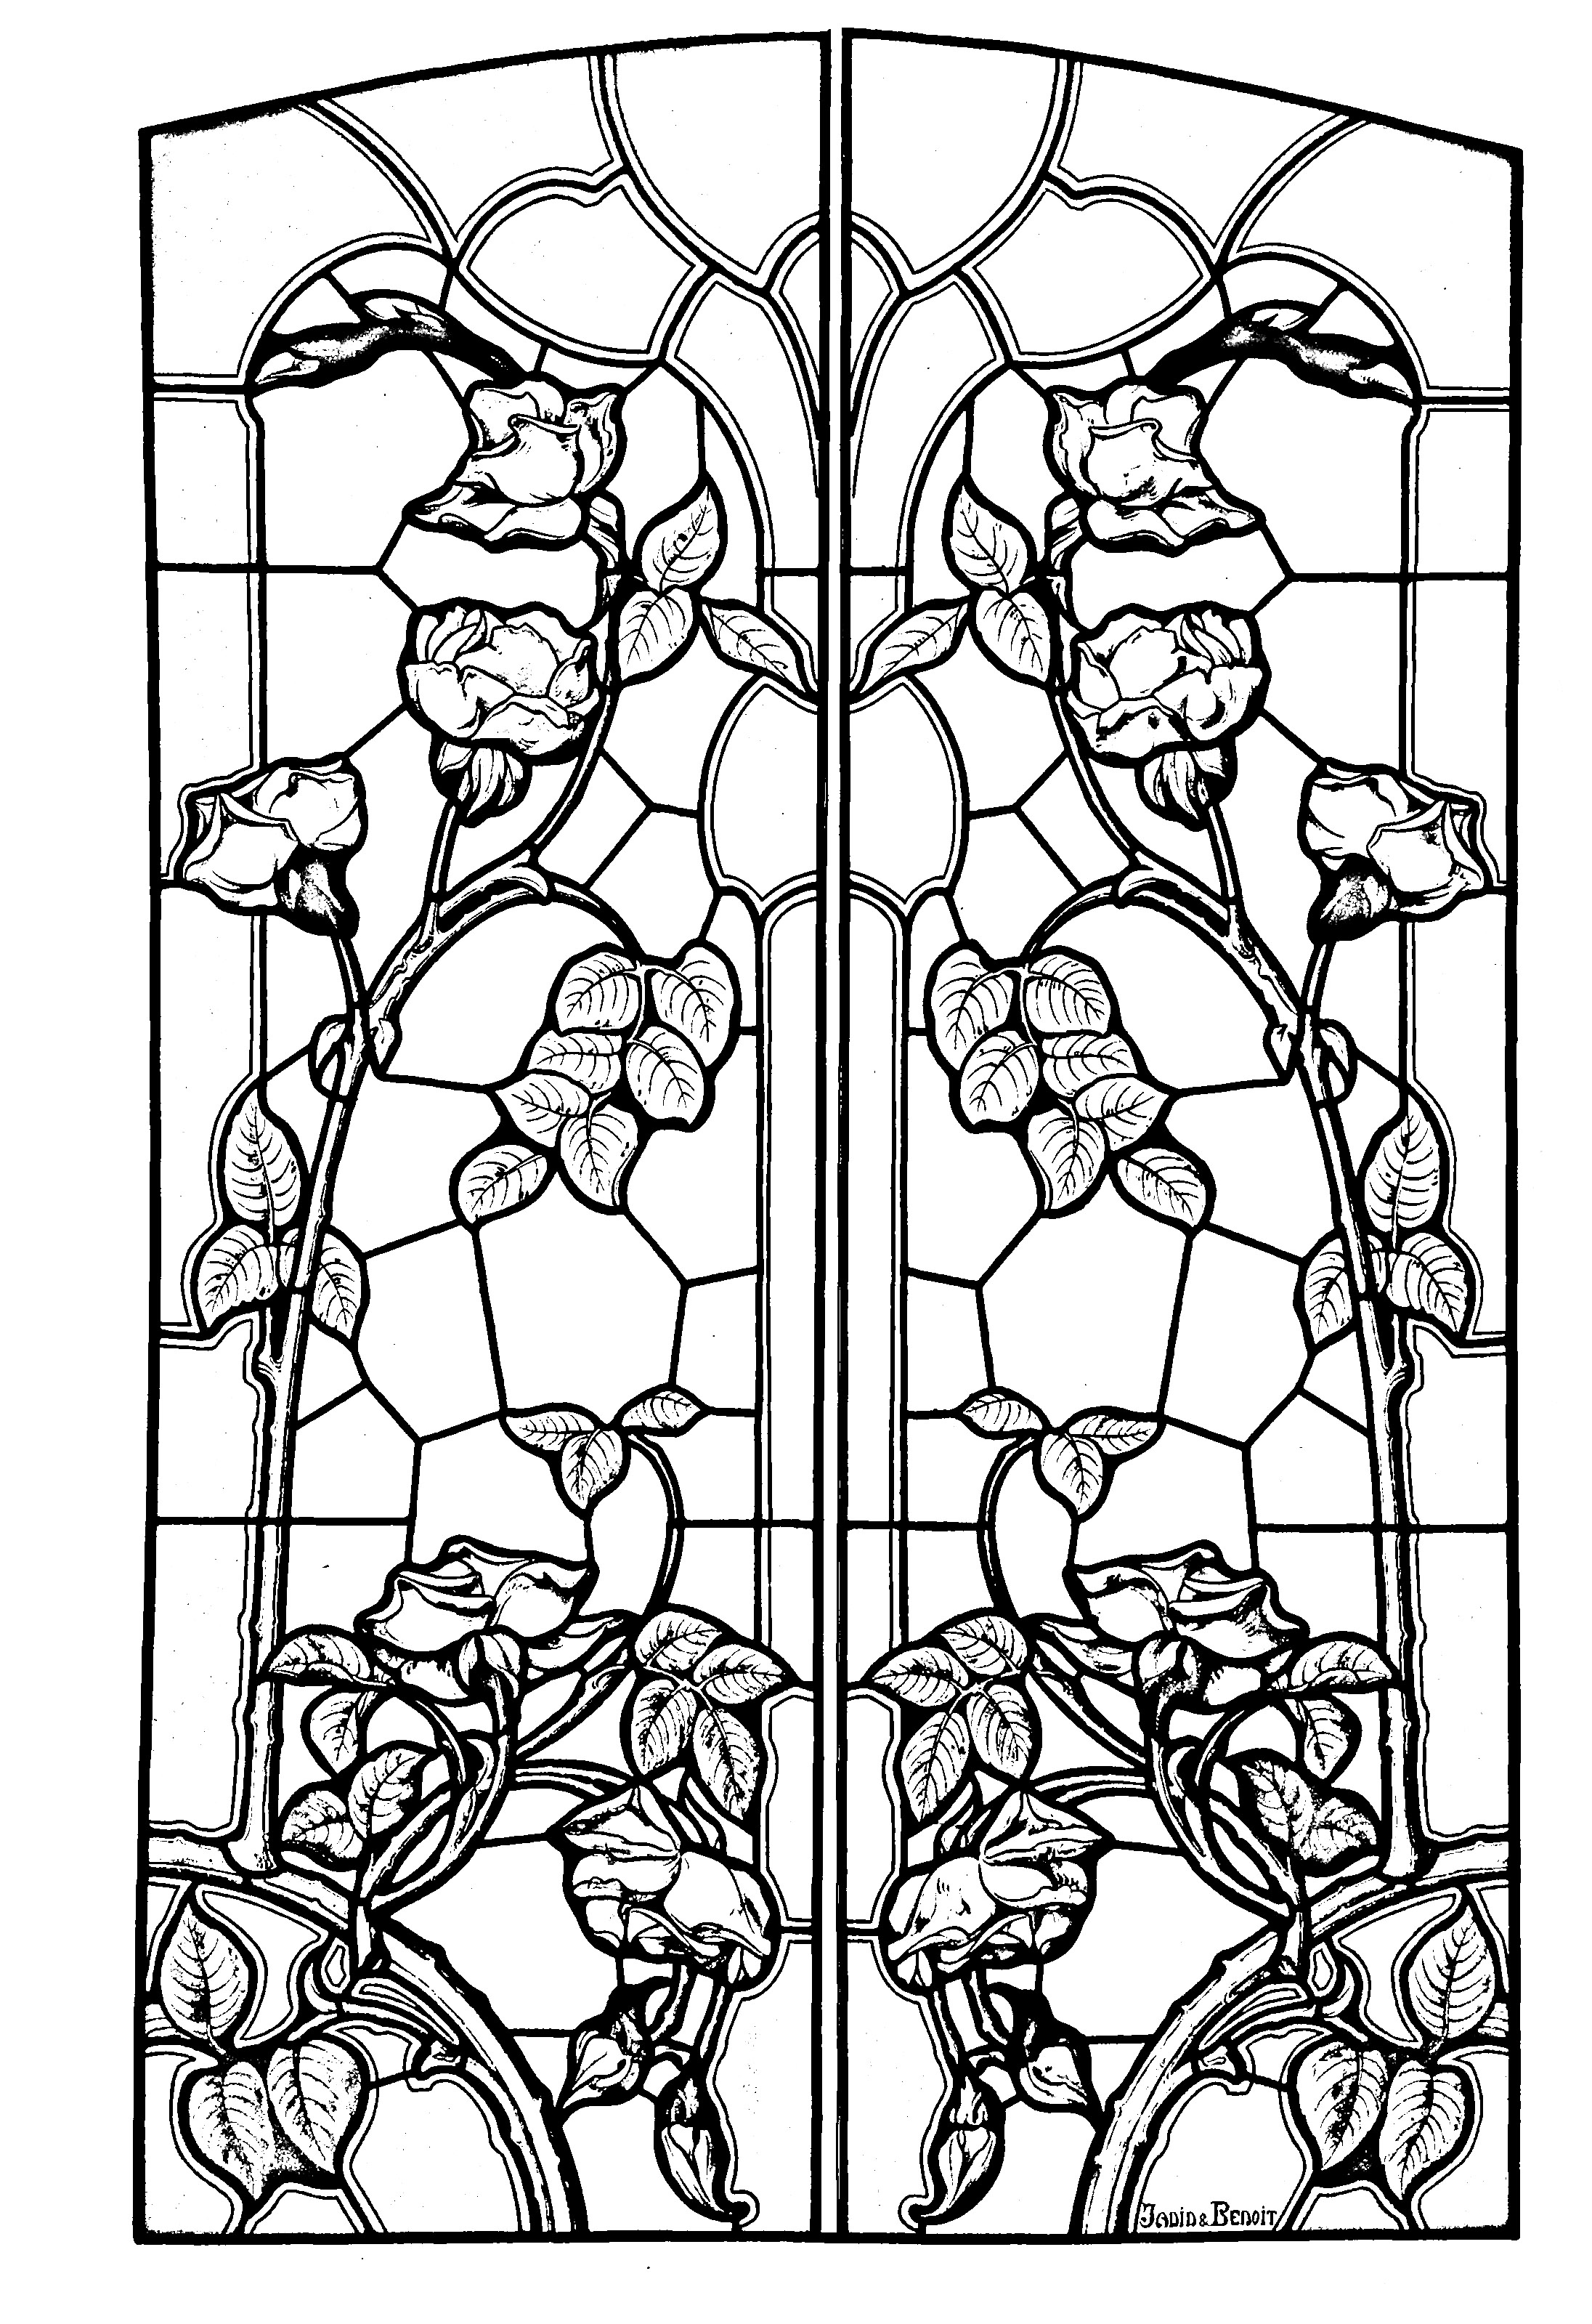 stained glass drawing art nouveau style